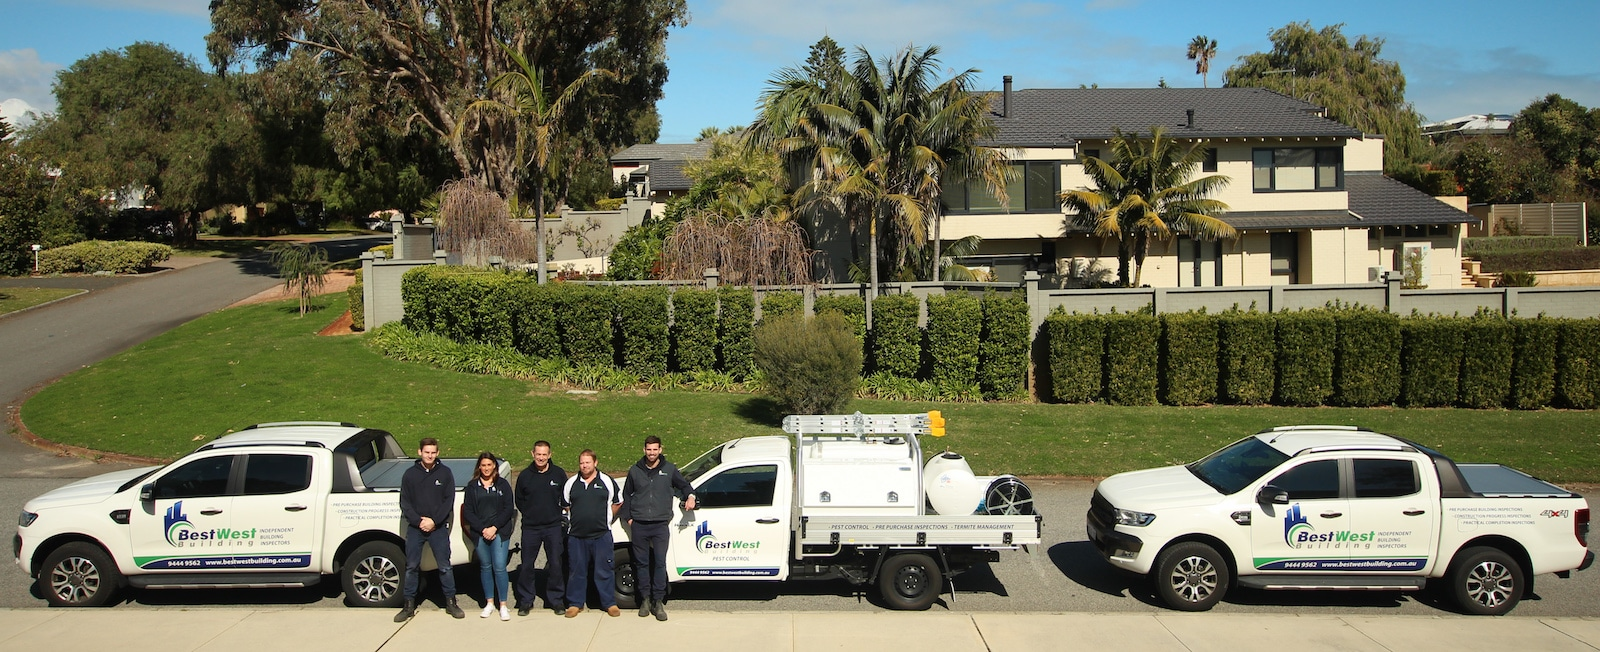 Bestwest Building and Pest Inspections